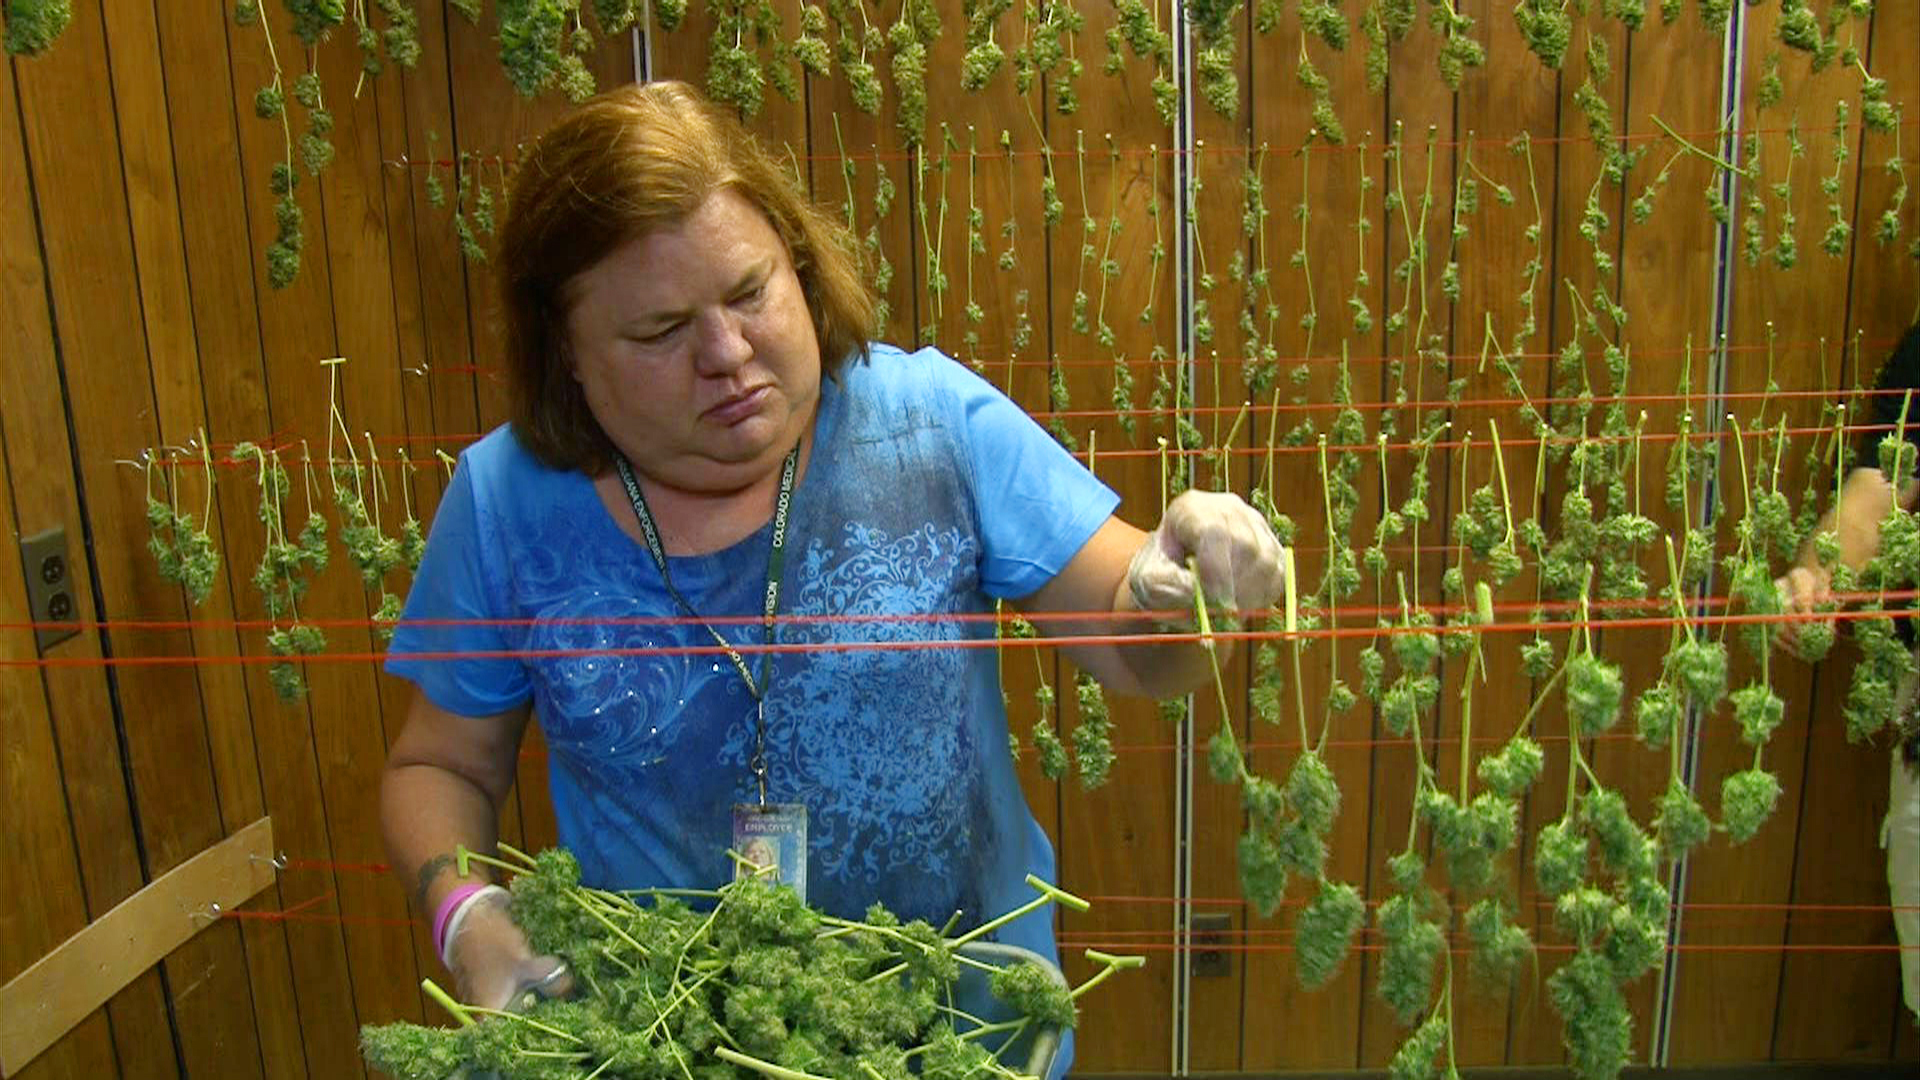 Colo. bid to legalize marijuana leads in polls - CBS News